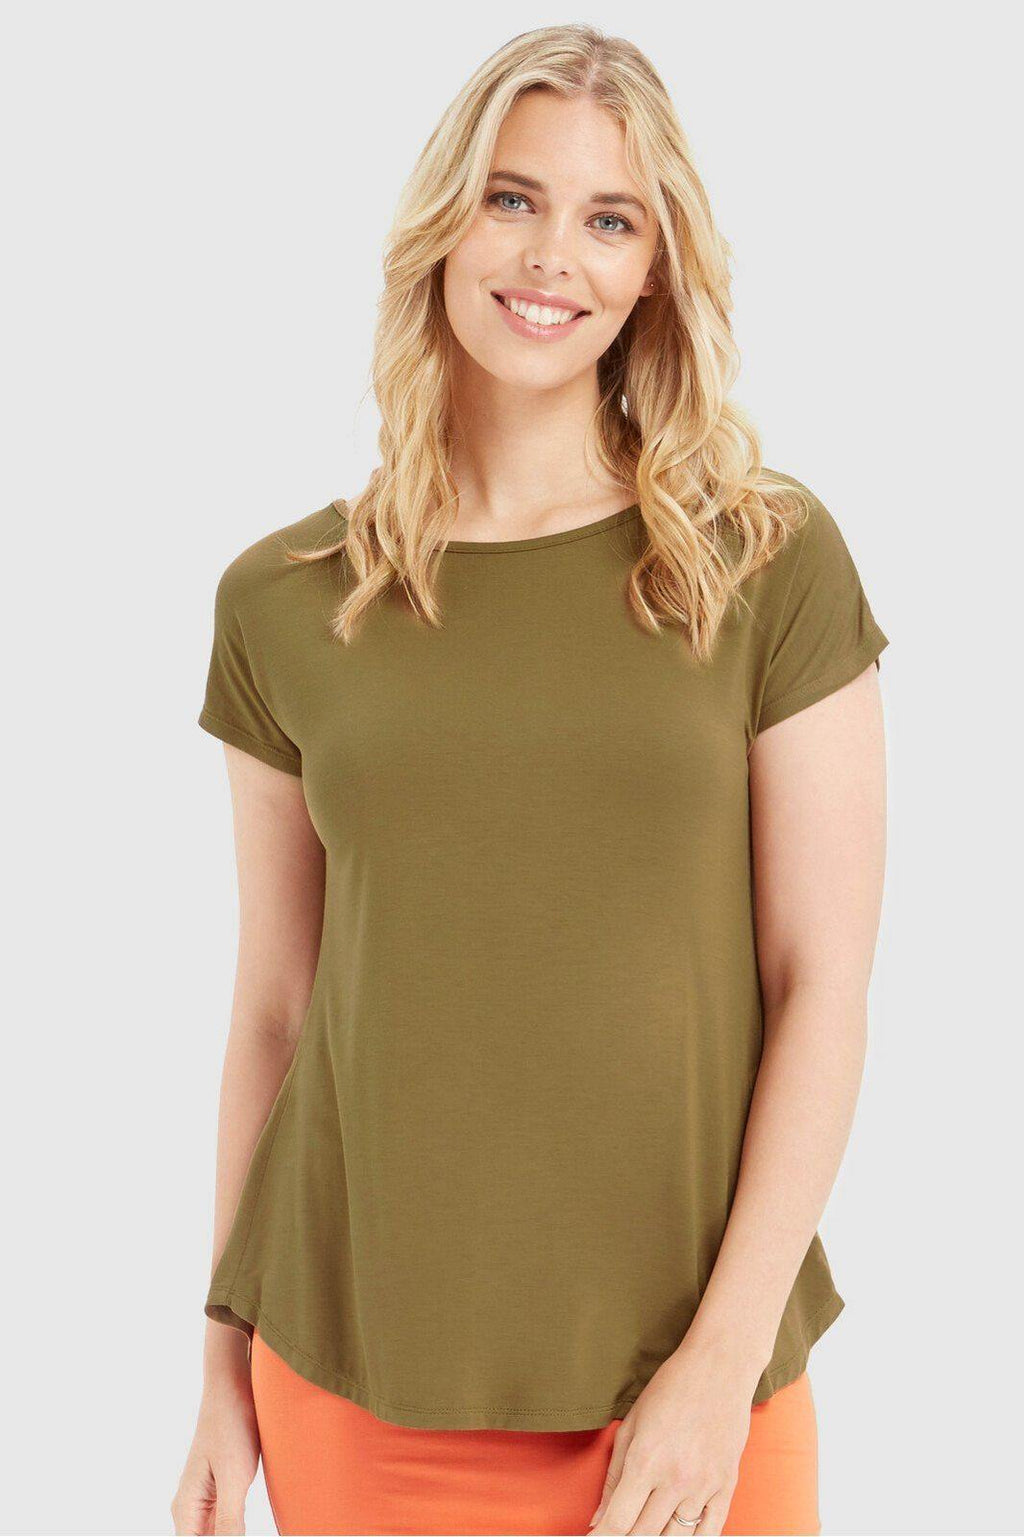 Bamboo Body Pia Tee - Khaki | Buy Online at Weekends